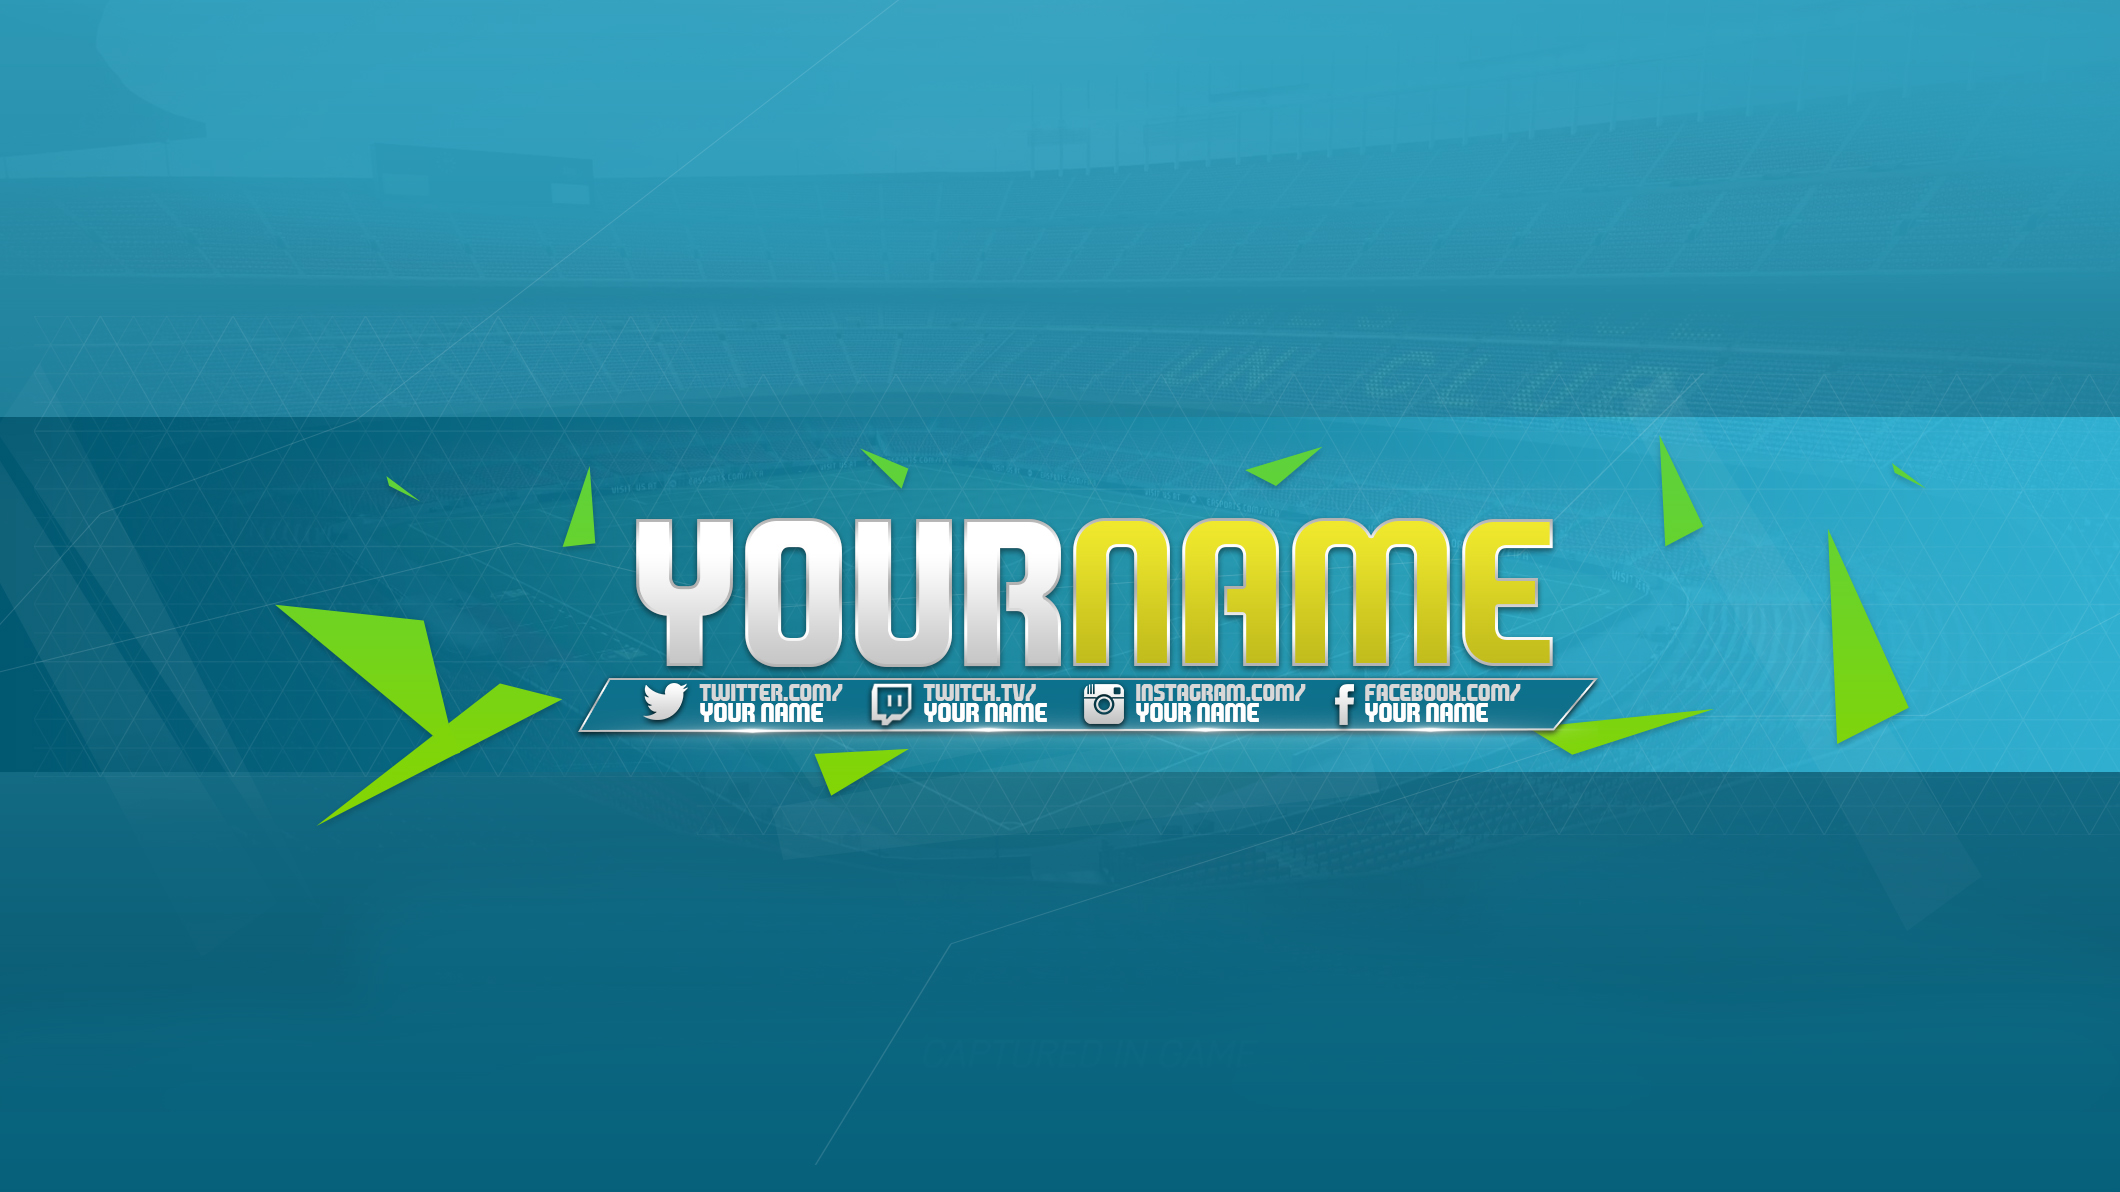 youtube channel art backgrounds - Boat.jeremyeaton.co